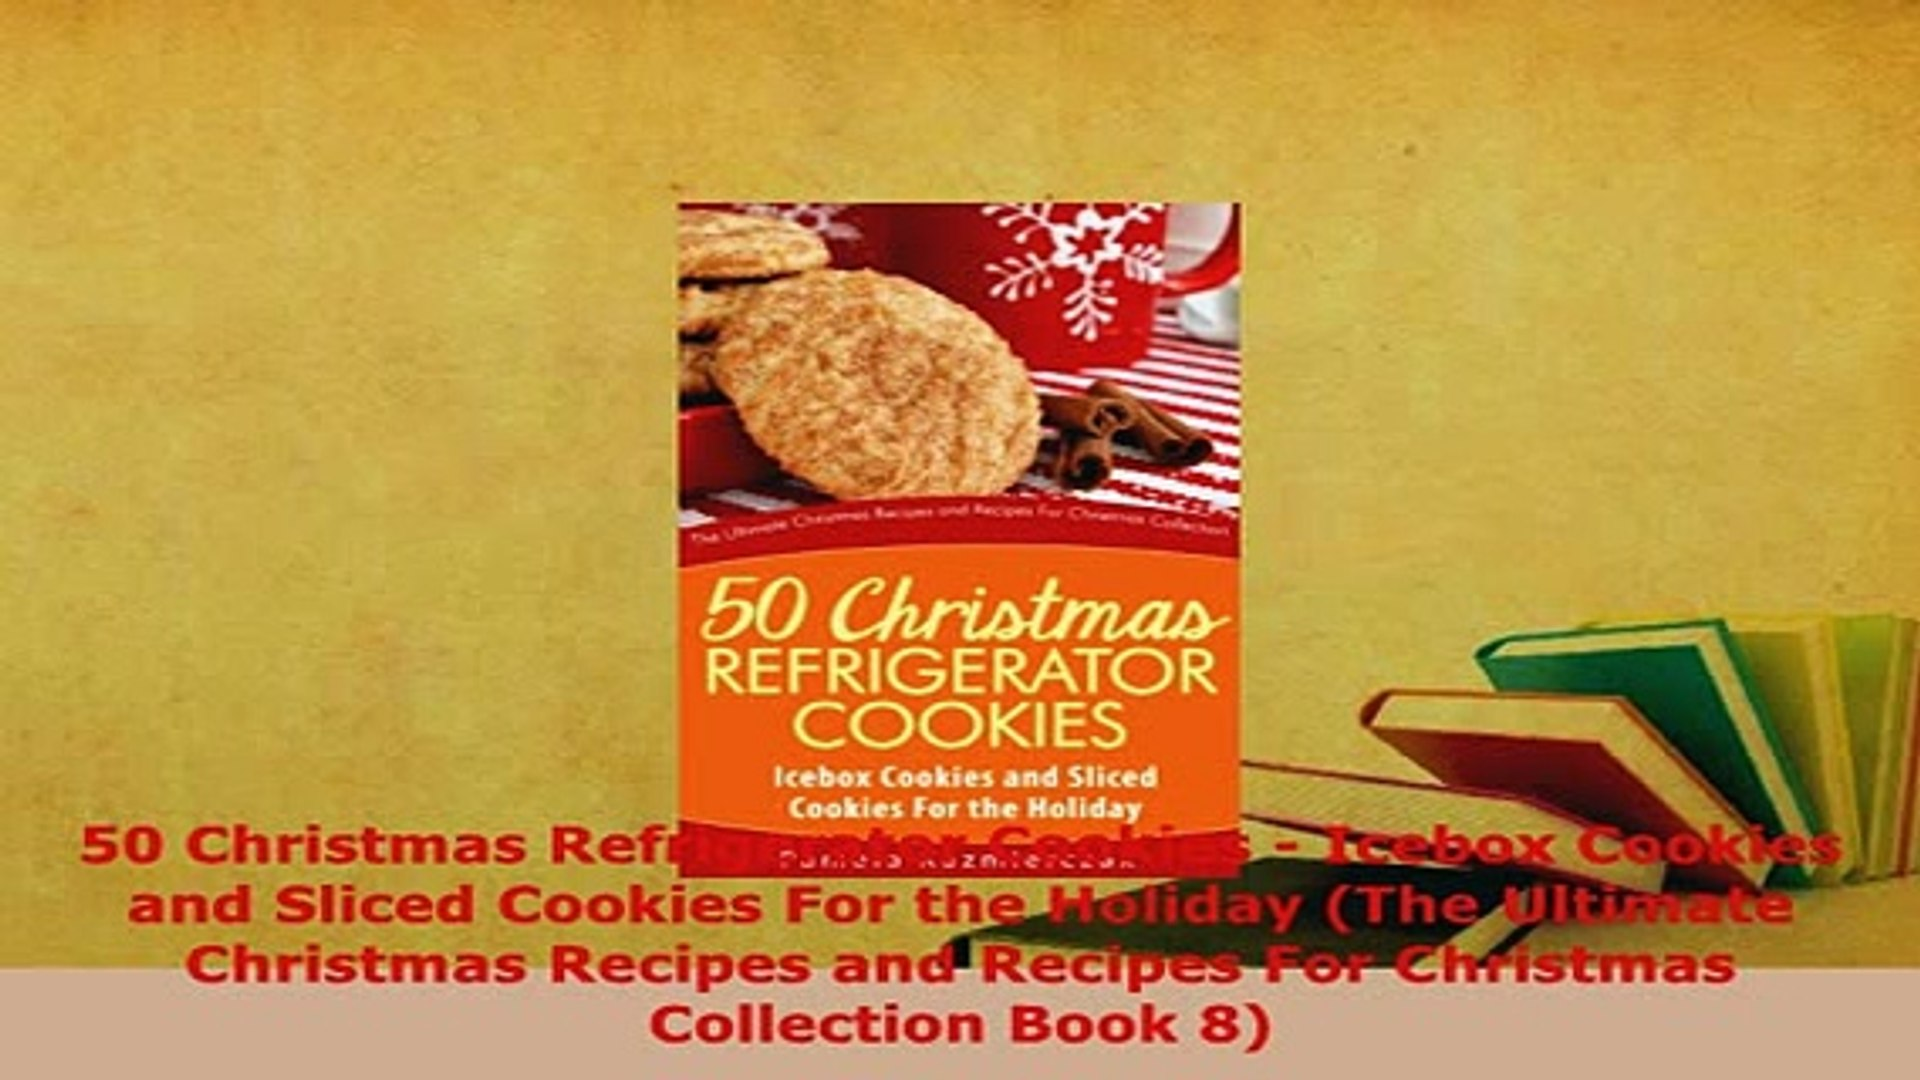 Pdf 50 Christmas Refrigerator Cookies Icebox Cookies And Sliced Cookies For The Holiday The Read Full Ebook